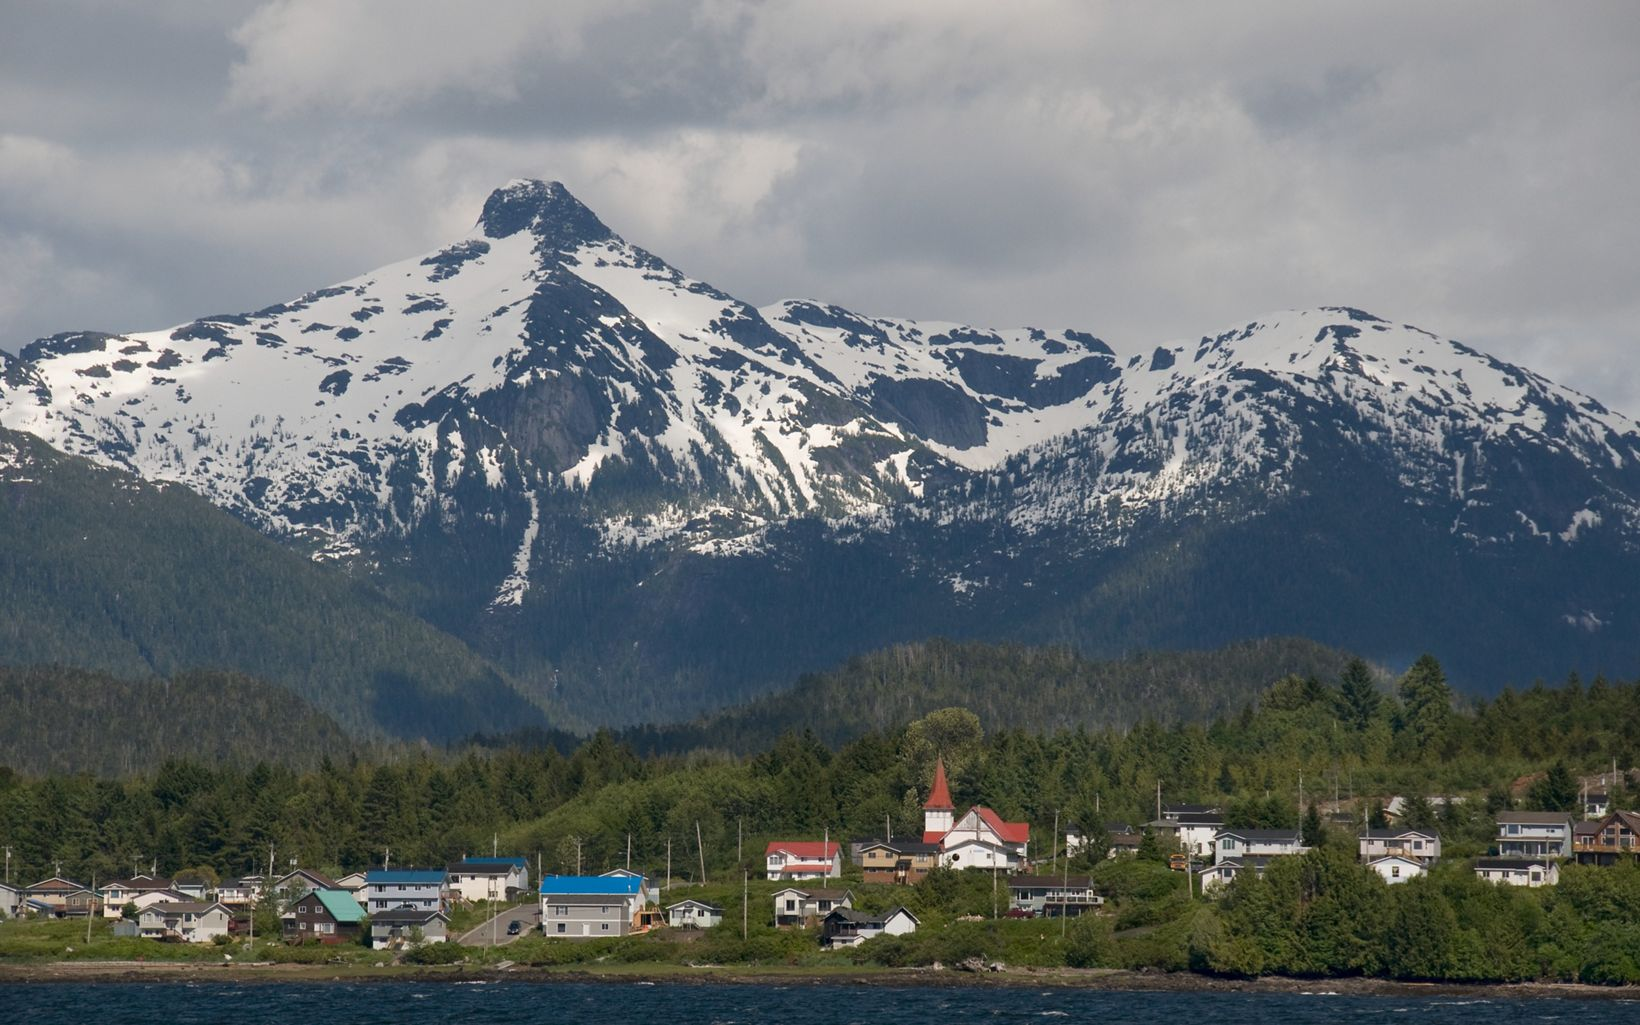 Usually called Port Simpson, an Indigenous community in British Columbia, not far from the city of Prince Rupert.